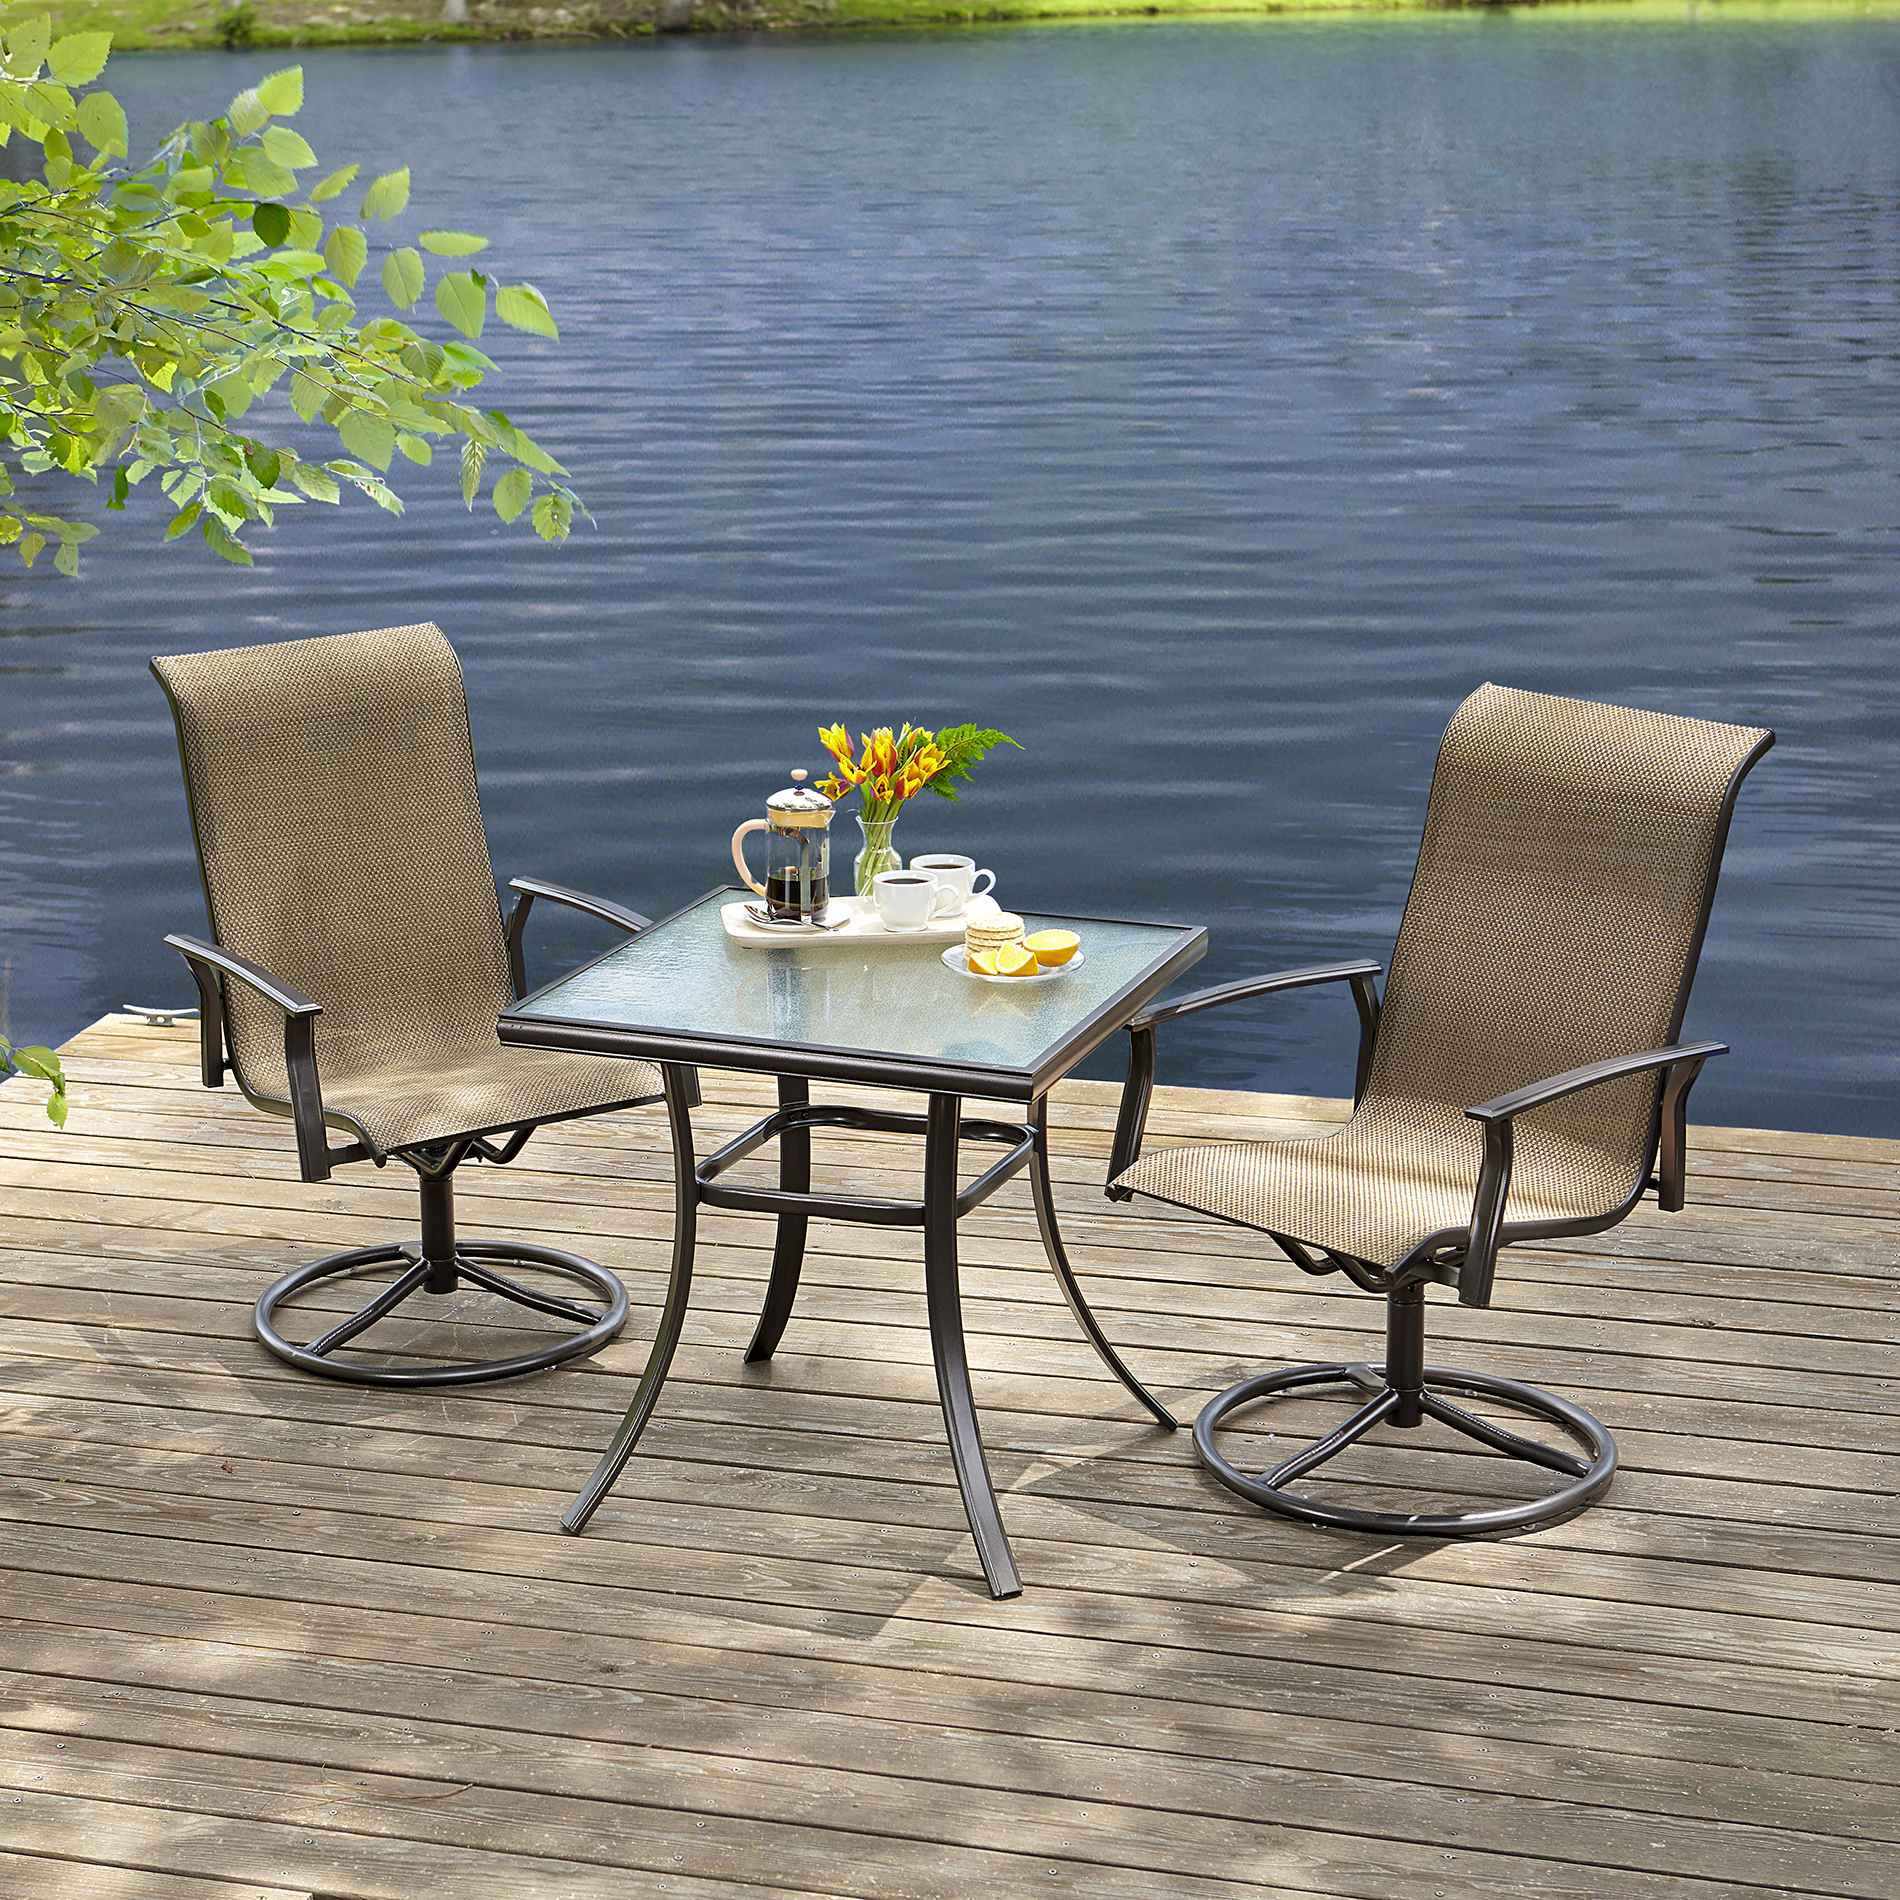 bistro table and chairs kmart barrel swivel chair essential garden fulton 3pc set outdoor living